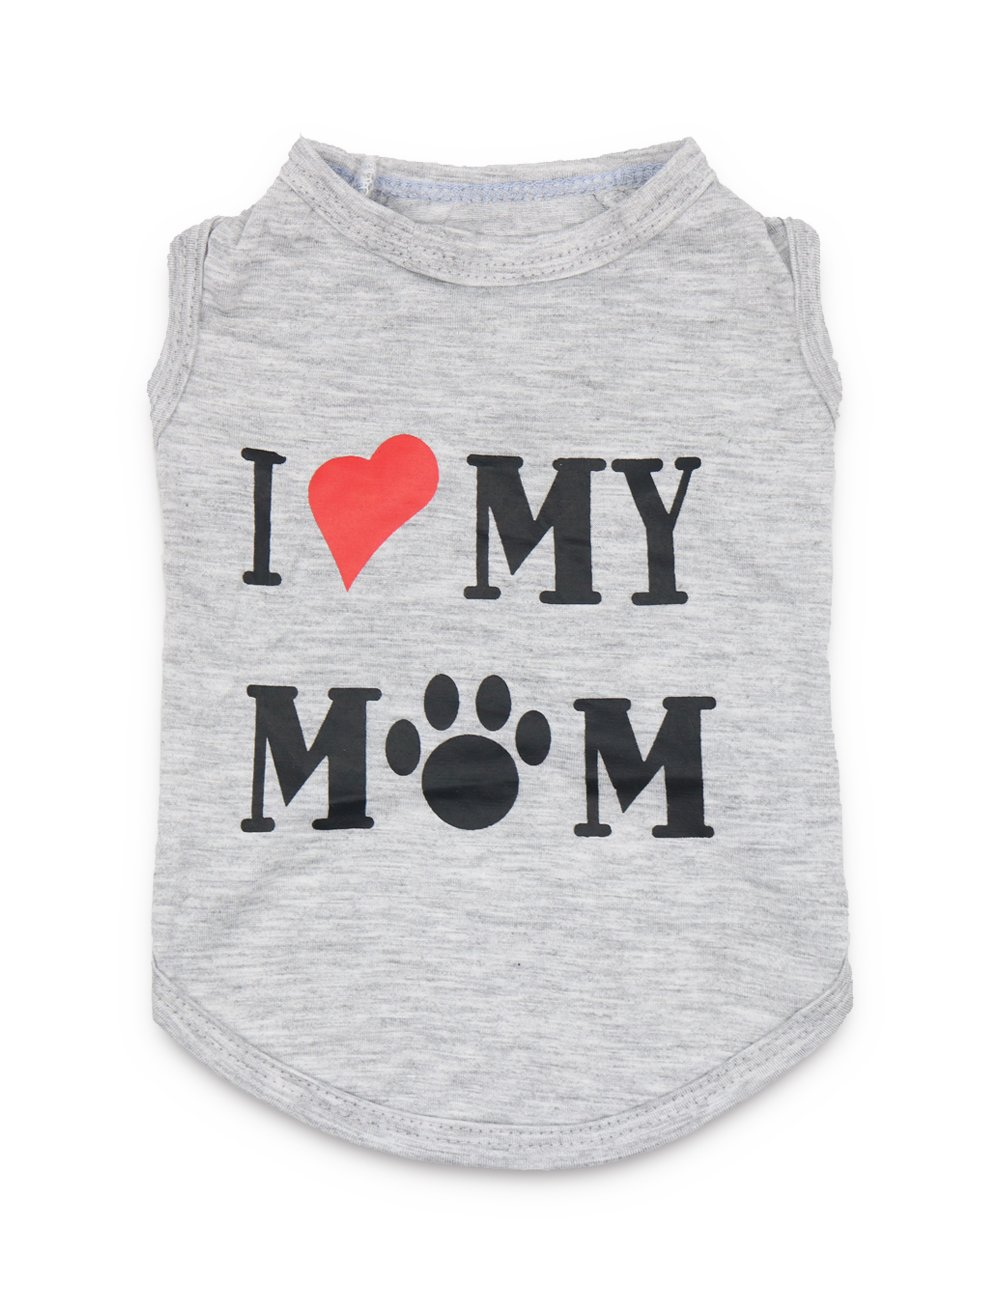 DroolingDog Dog Clothes Puppy Shirts I Love My Mom Dog T Shirt for Small Dogs, Small, Grey